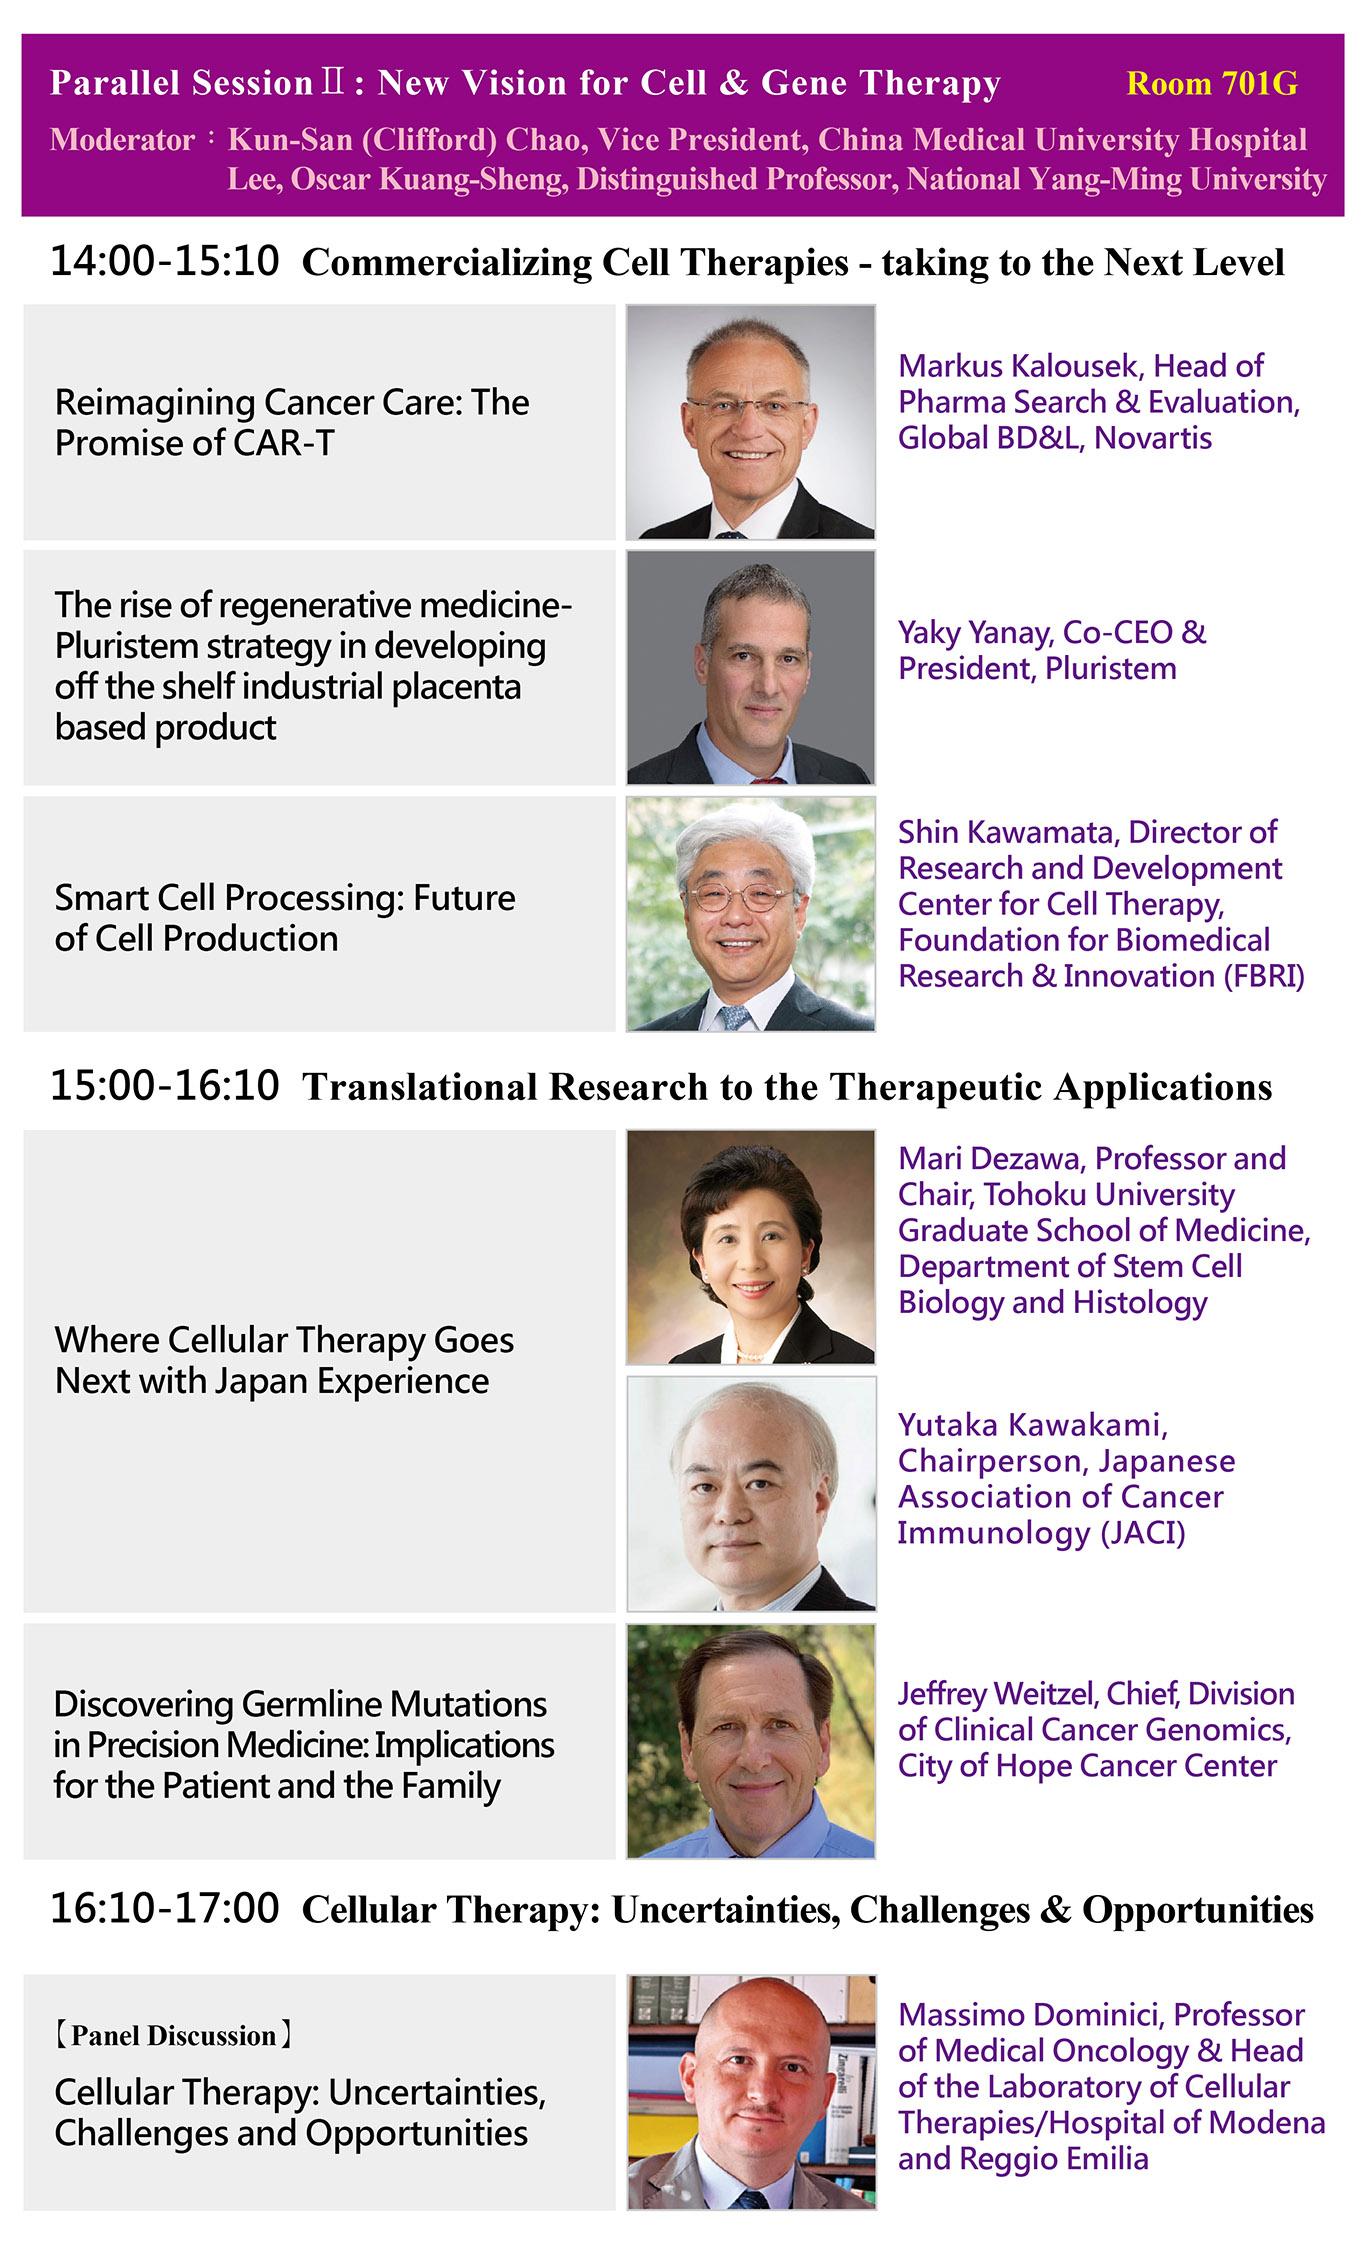 Parallel SessionⅡ: New Vision for Cell & Gene Therapy